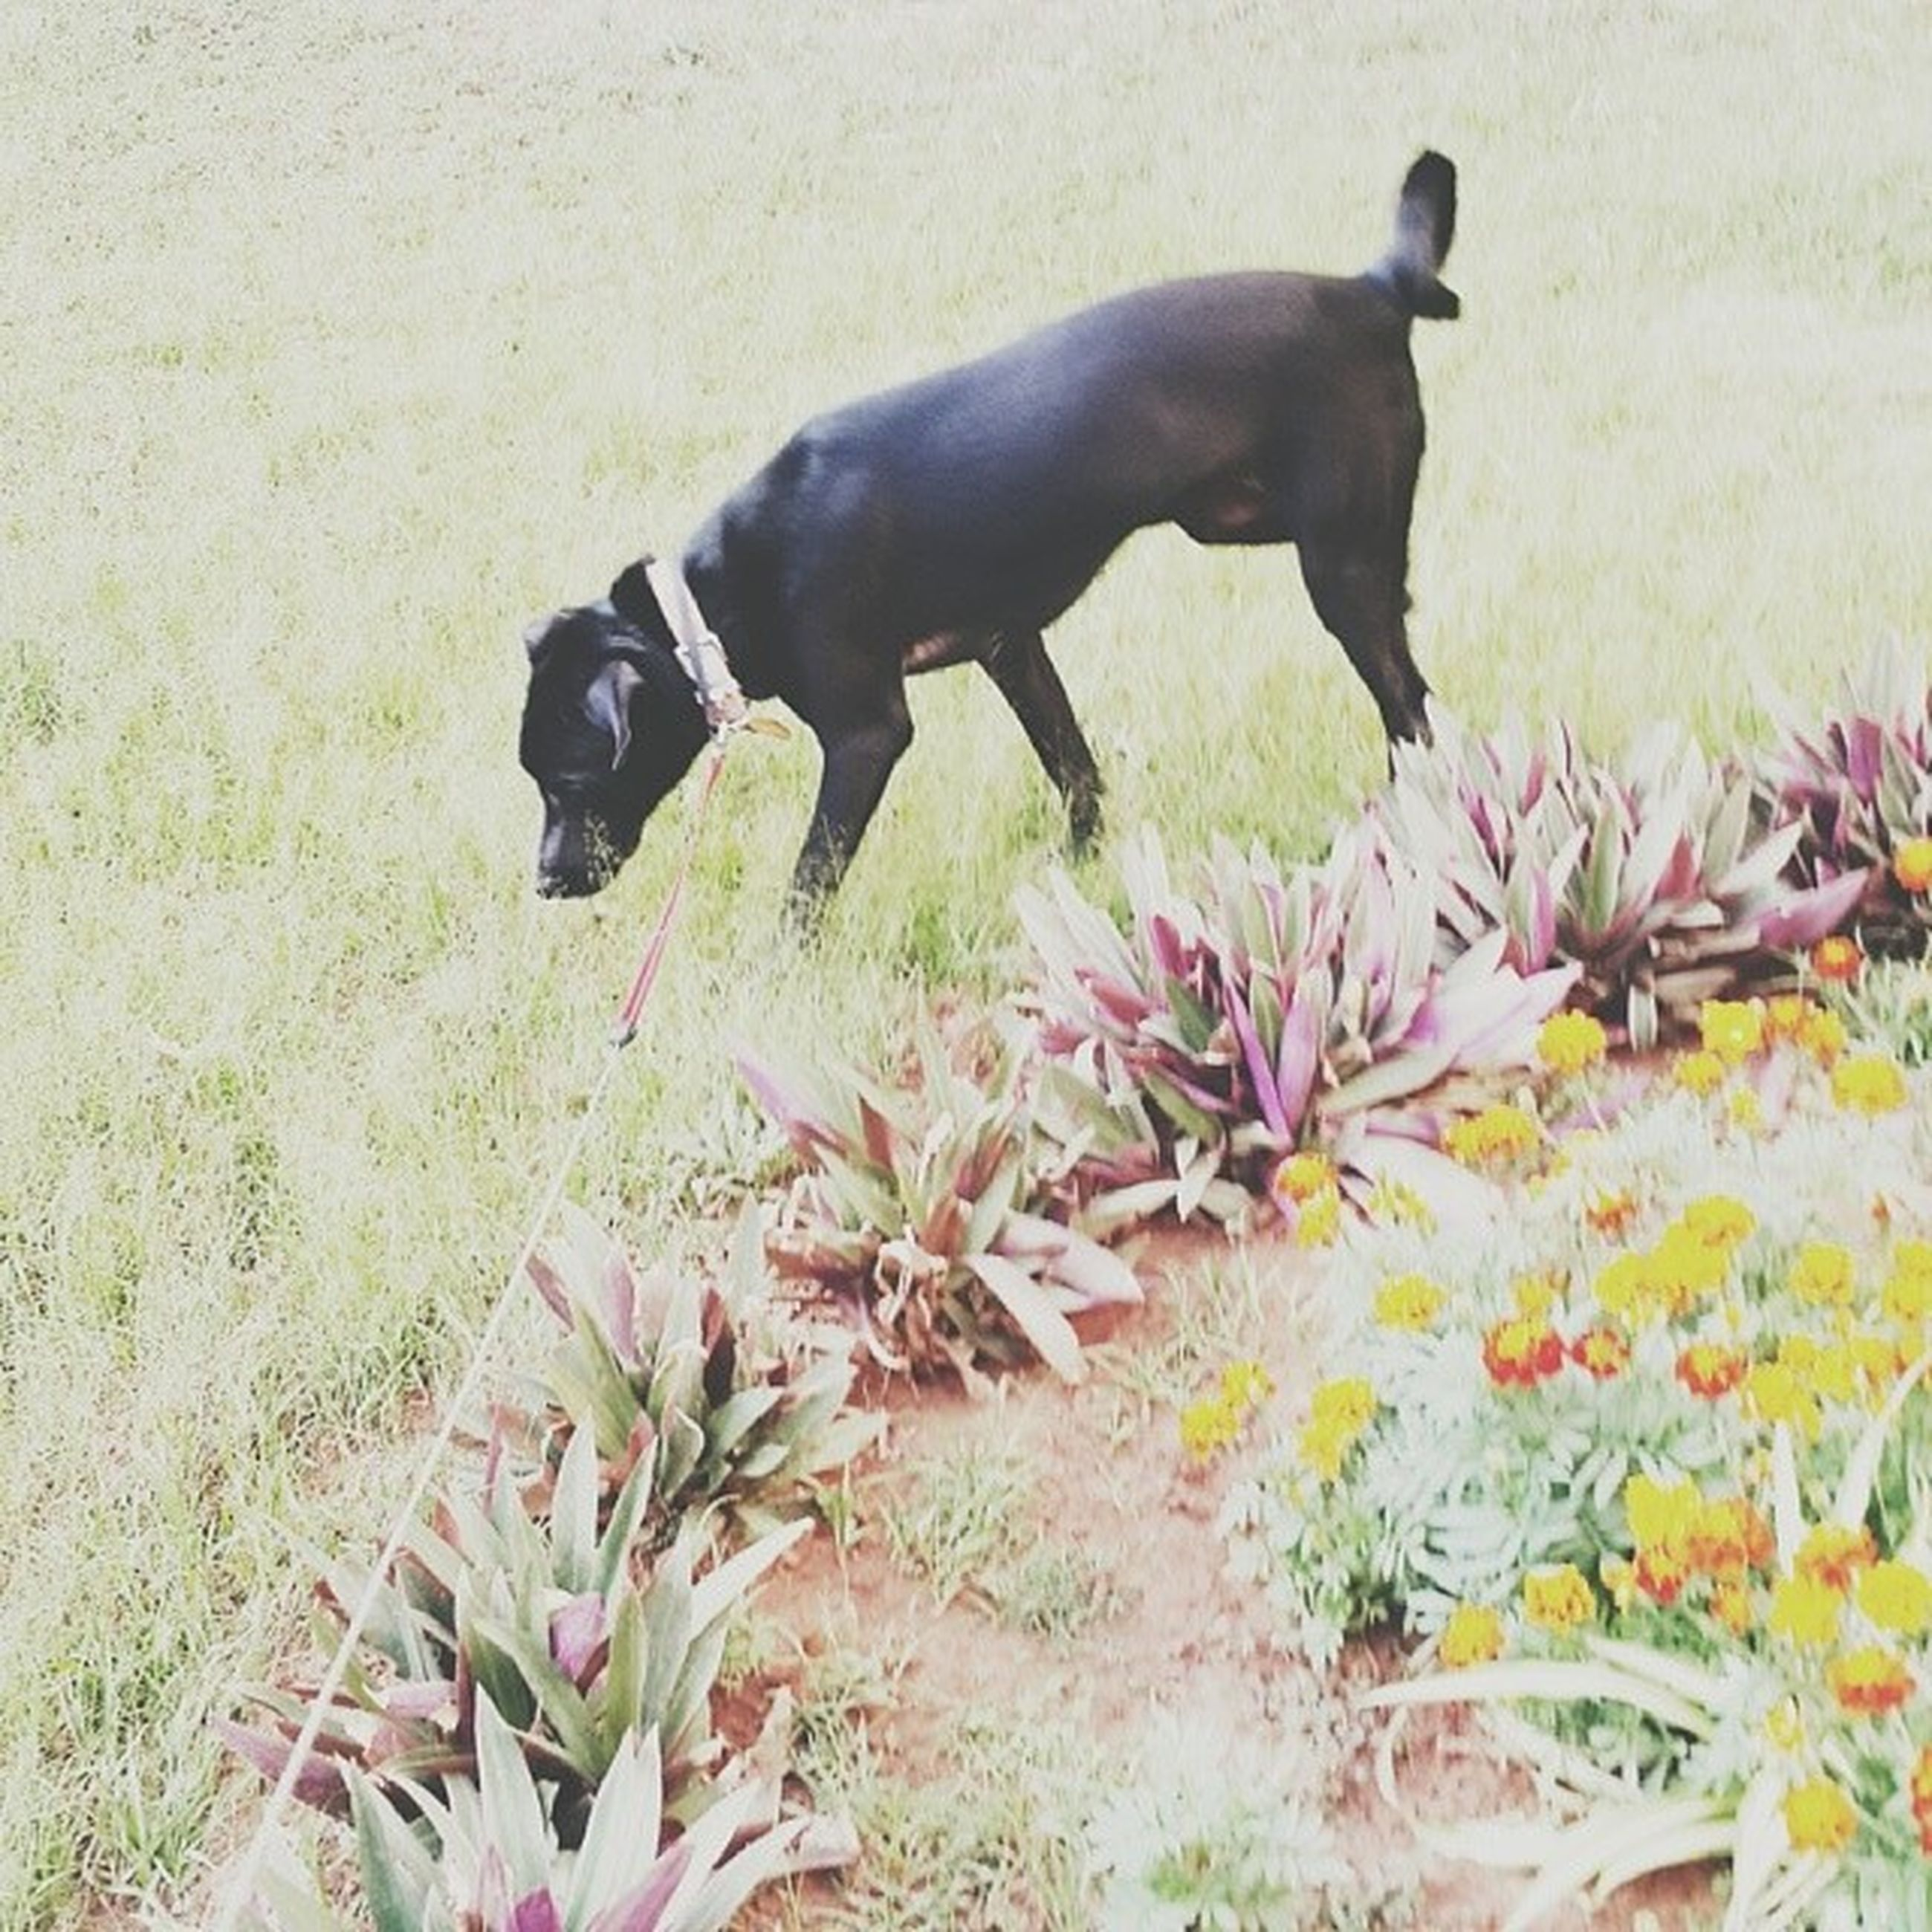 animal themes, domestic animals, mammal, one animal, dog, pets, field, flower, nature, plant, two animals, growth, grass, day, no people, standing, outdoors, high angle view, livestock, full length